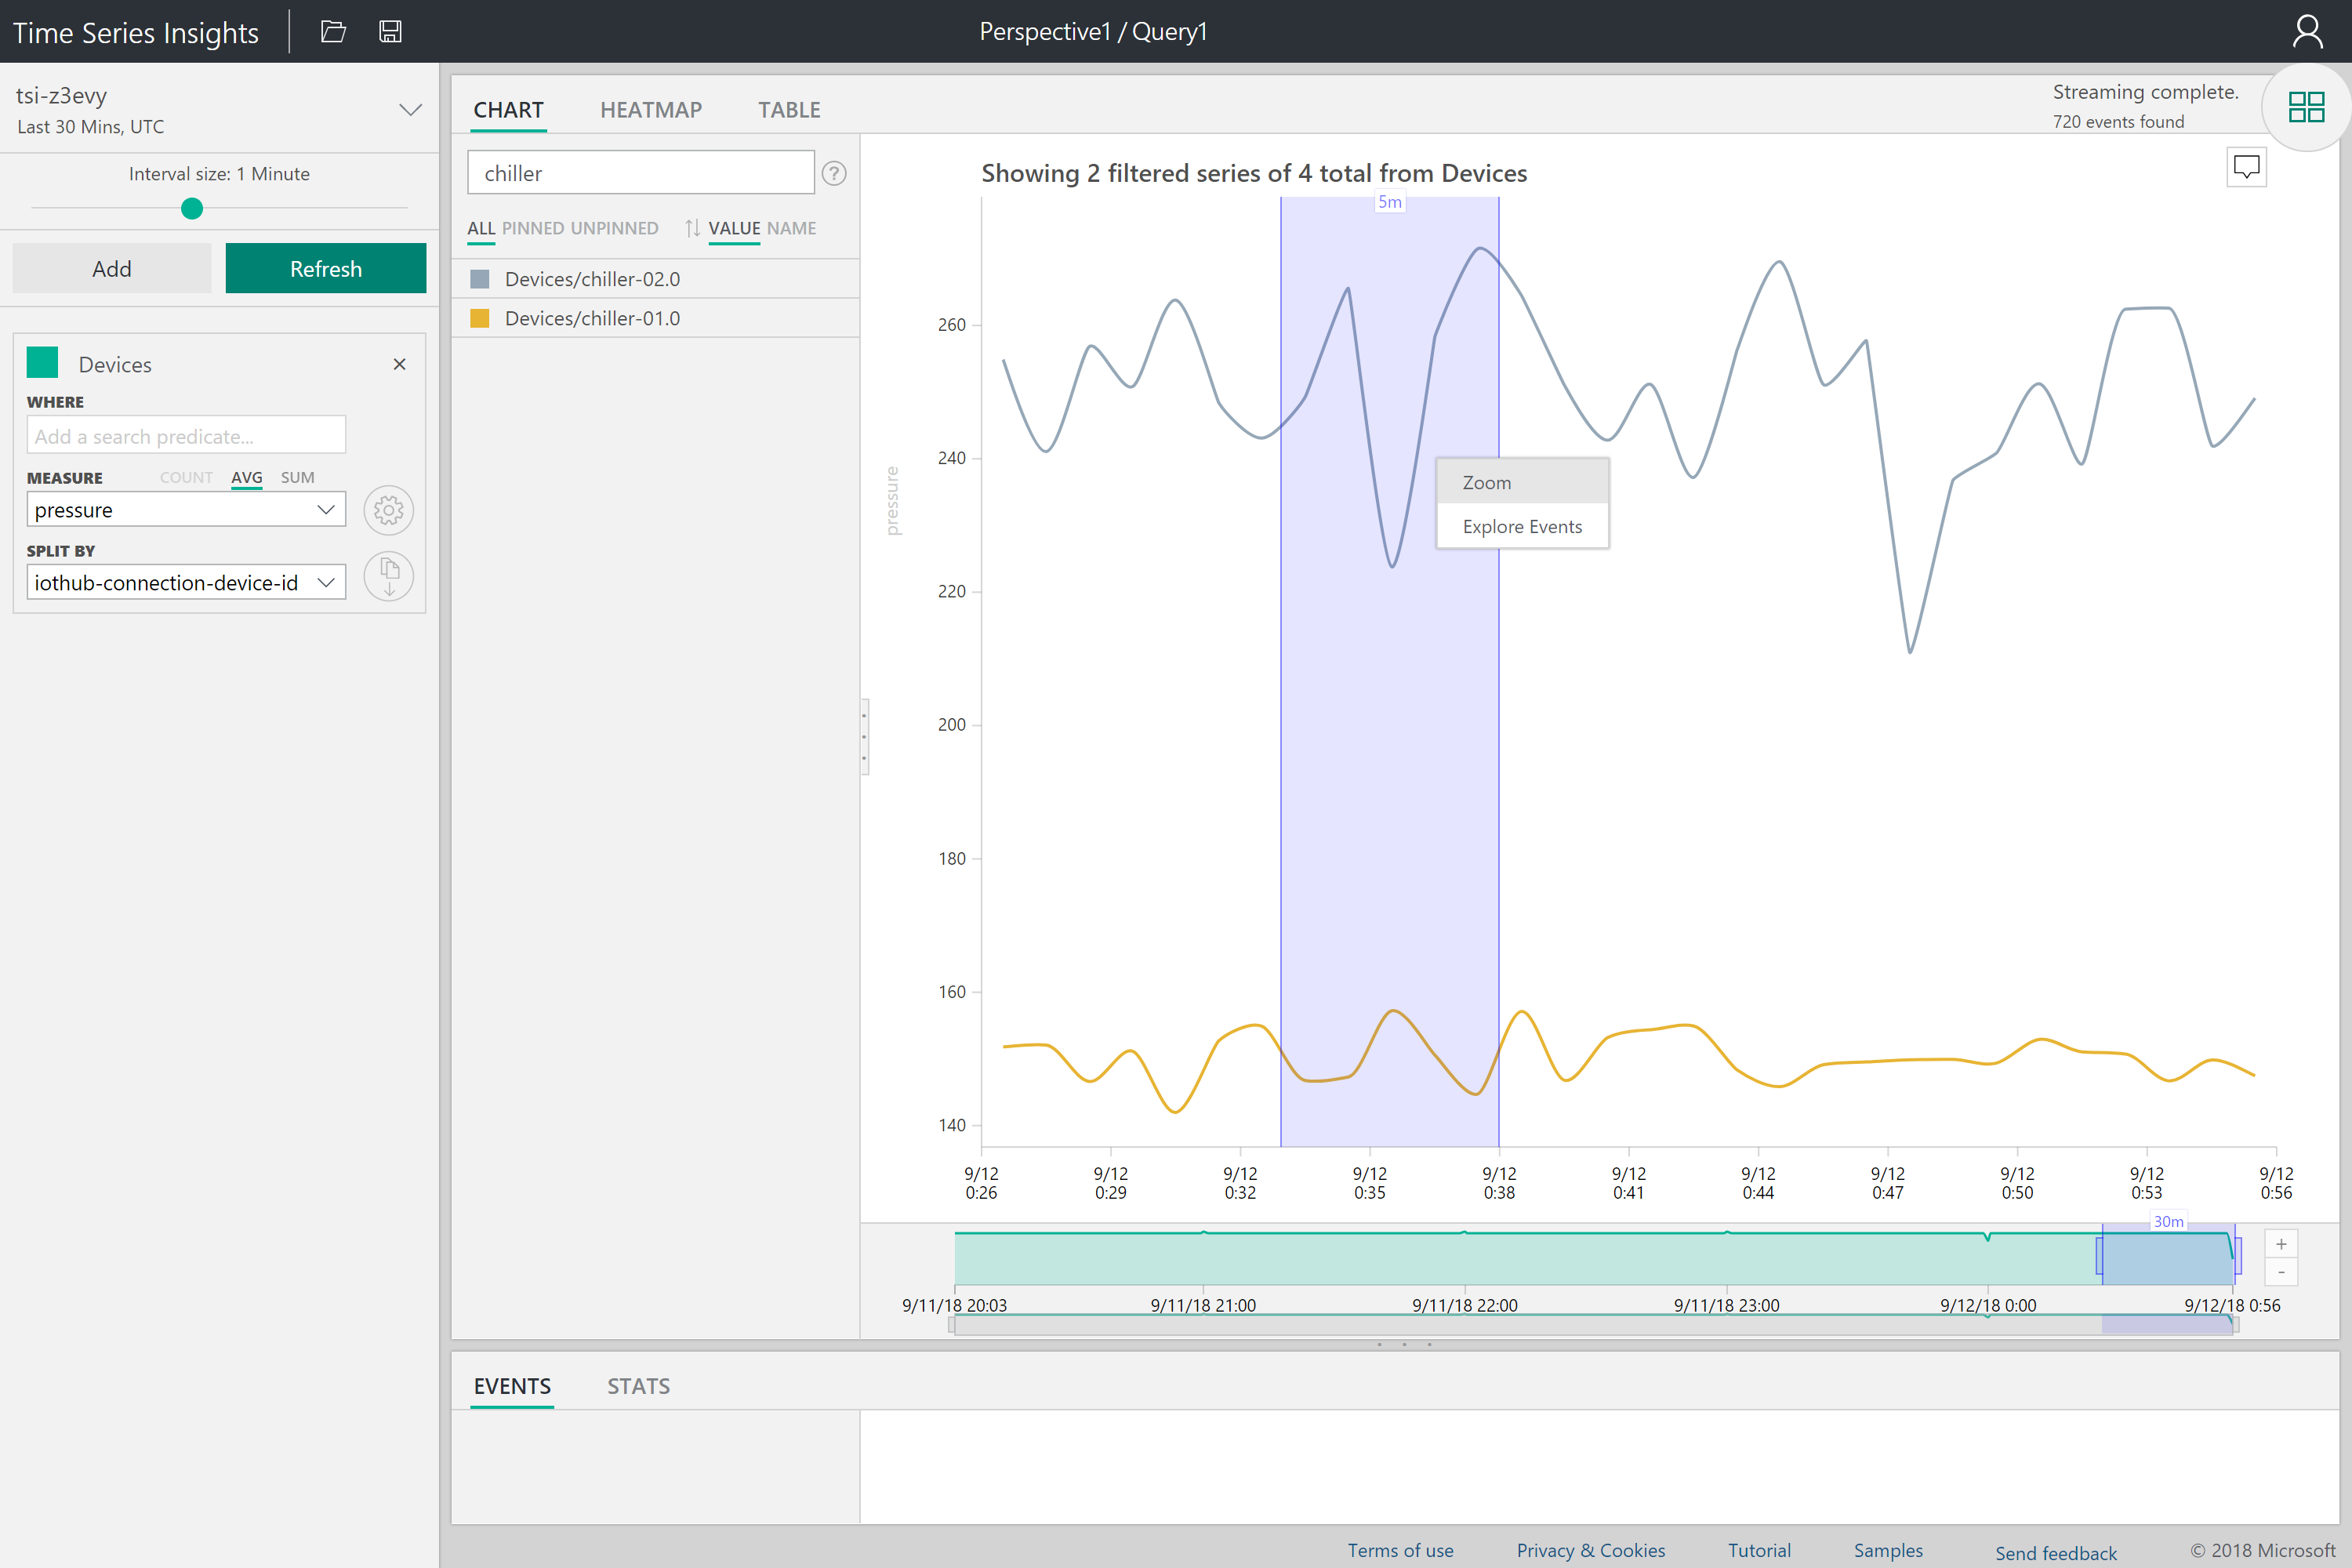 Screenshot of telemetry data in the Time Series Insights explorer